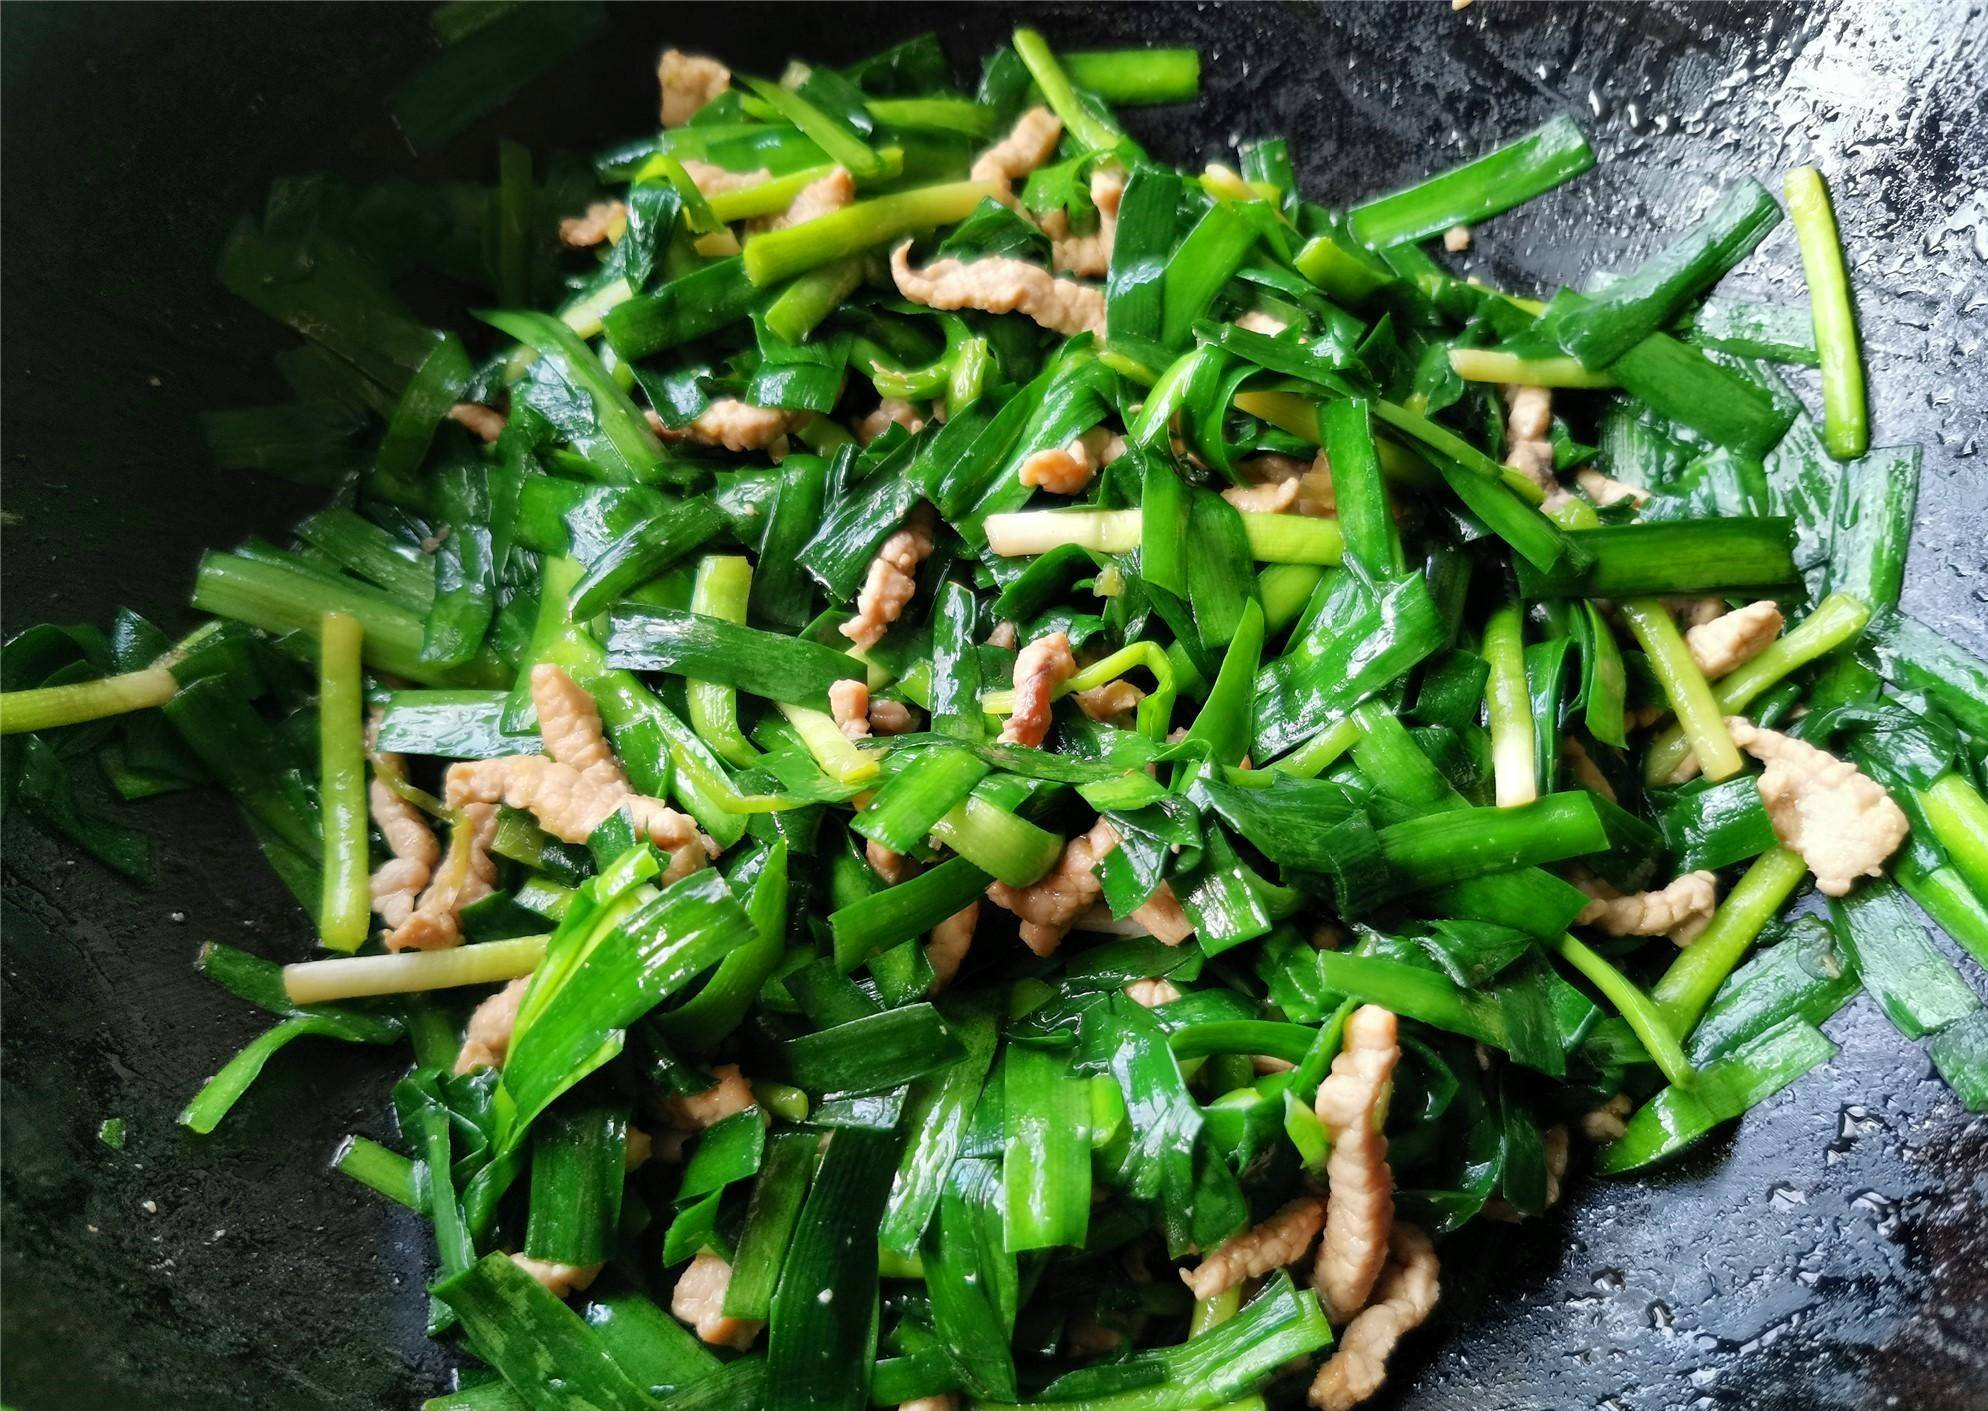 Stir Fried Garlic Chives with Shredded Pork 06